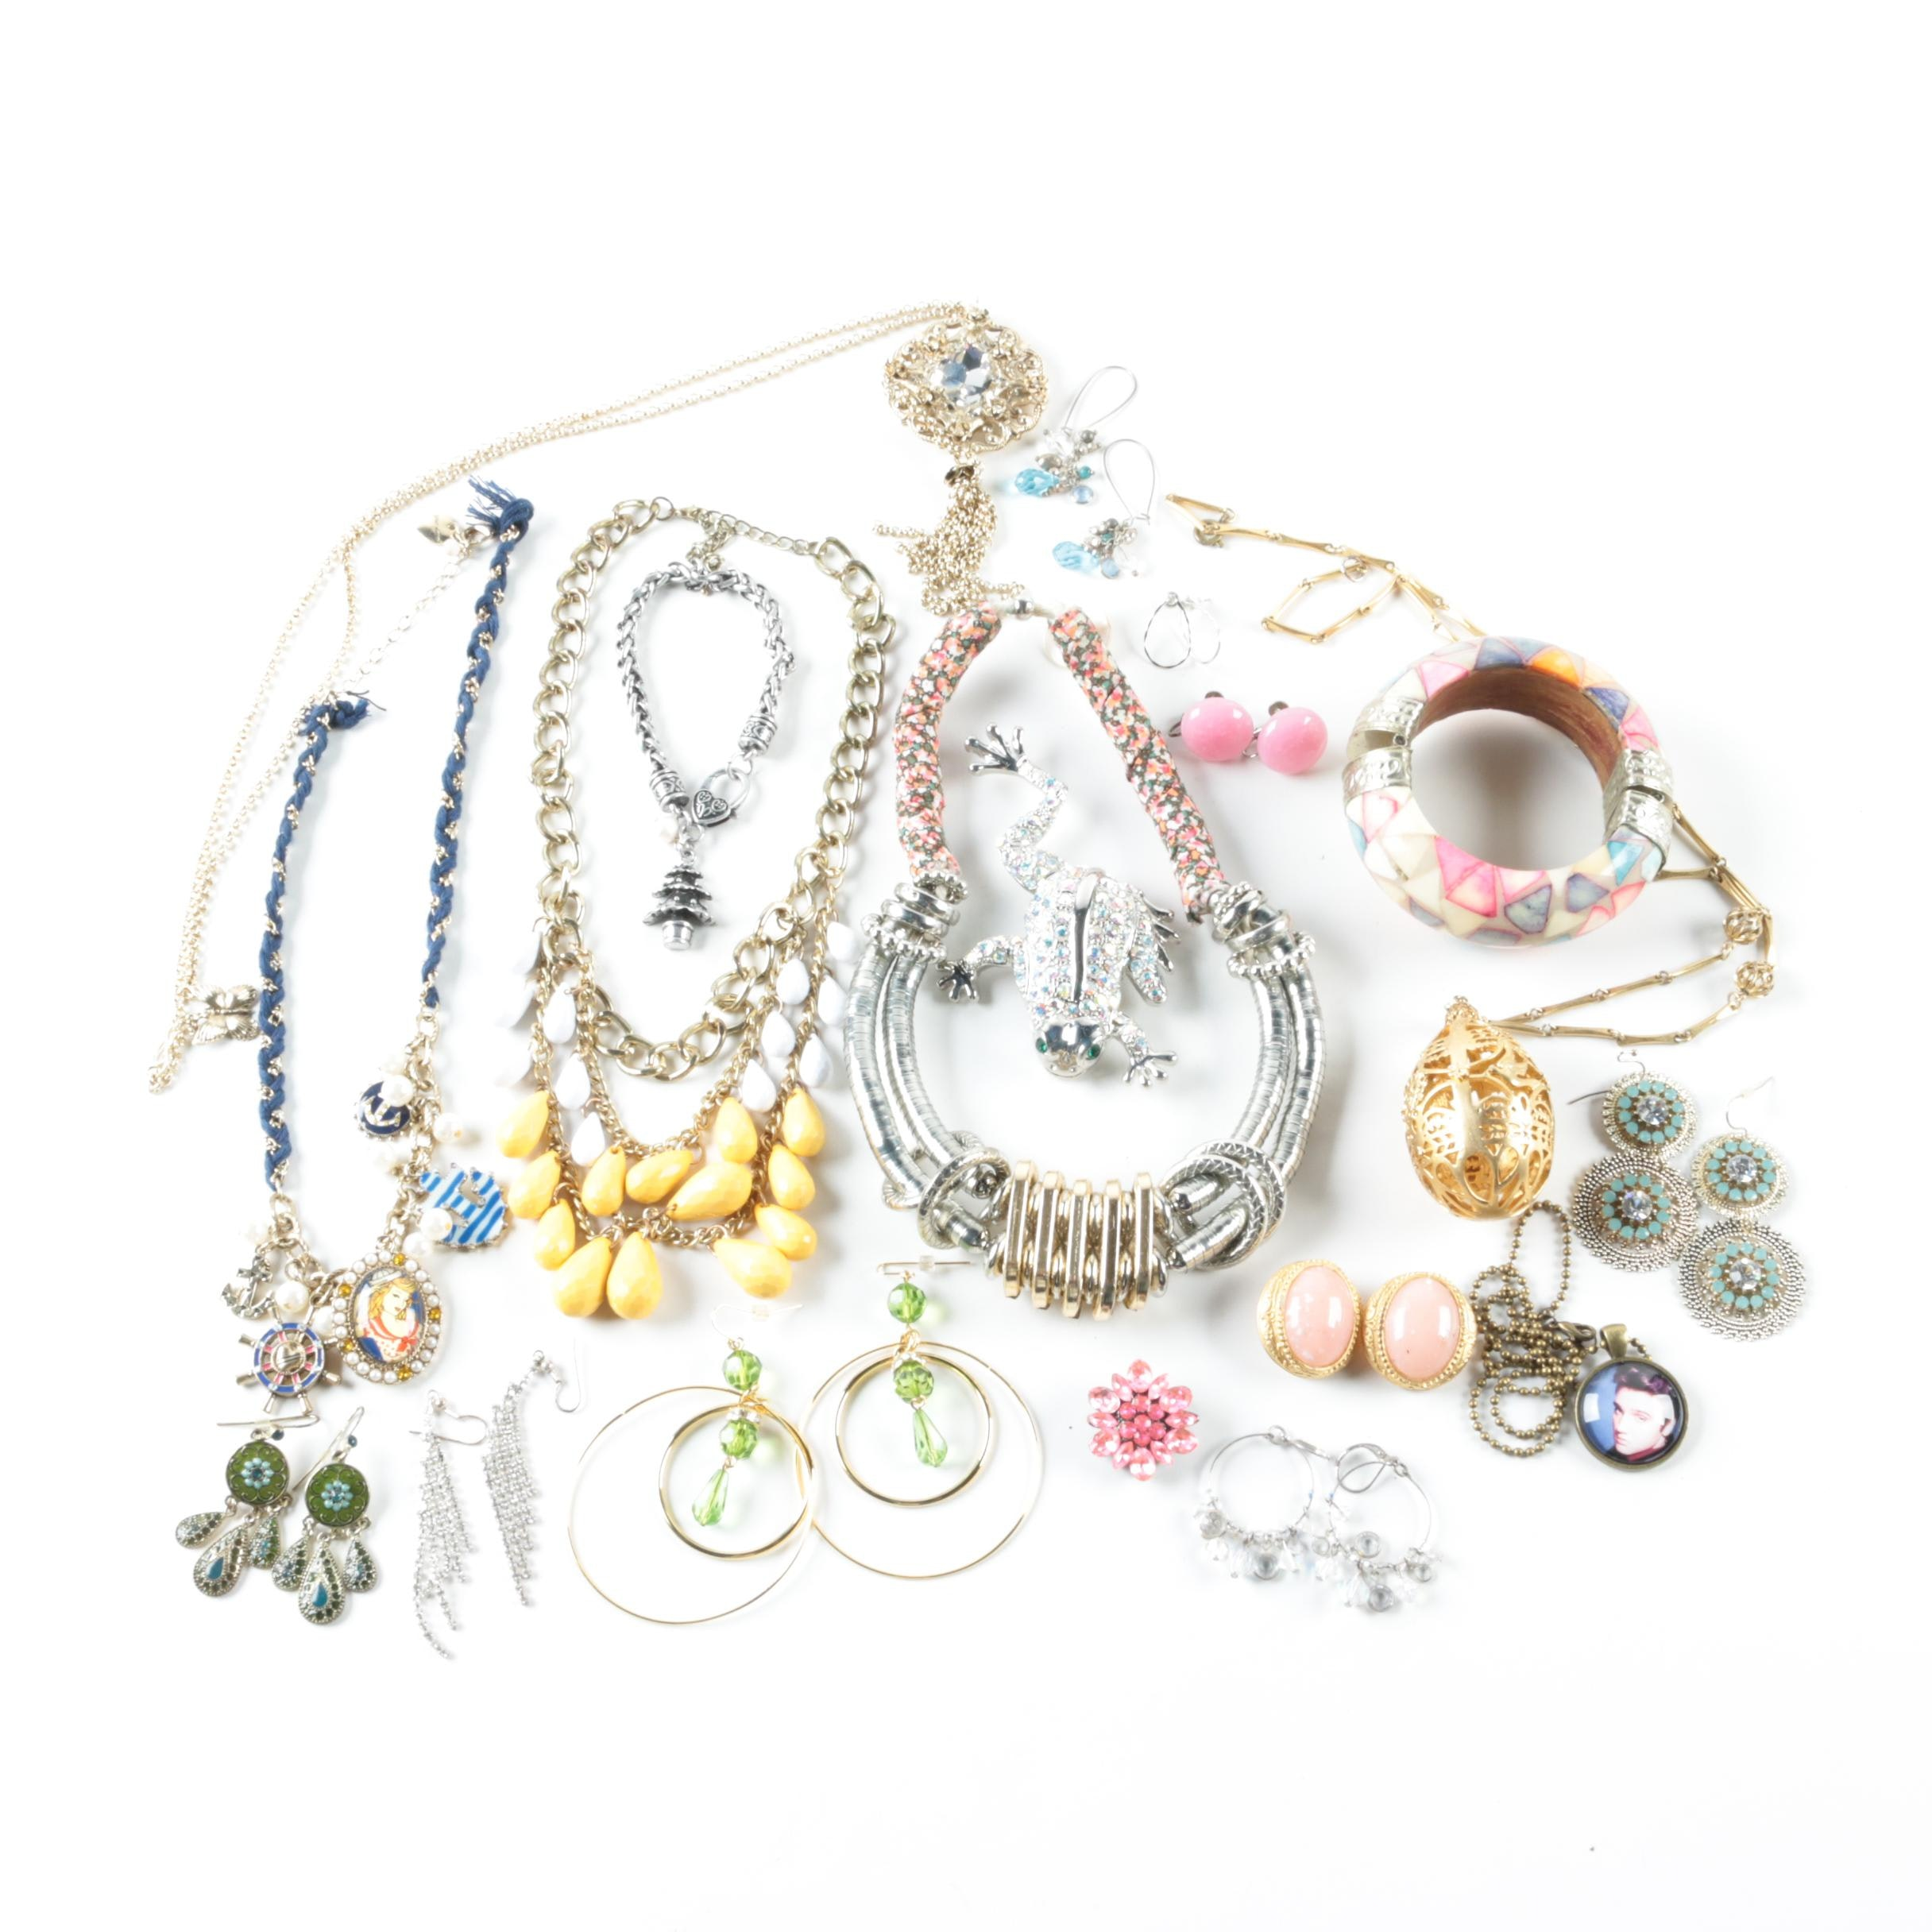 Assortment of Jewelry Including Betsy Johnson